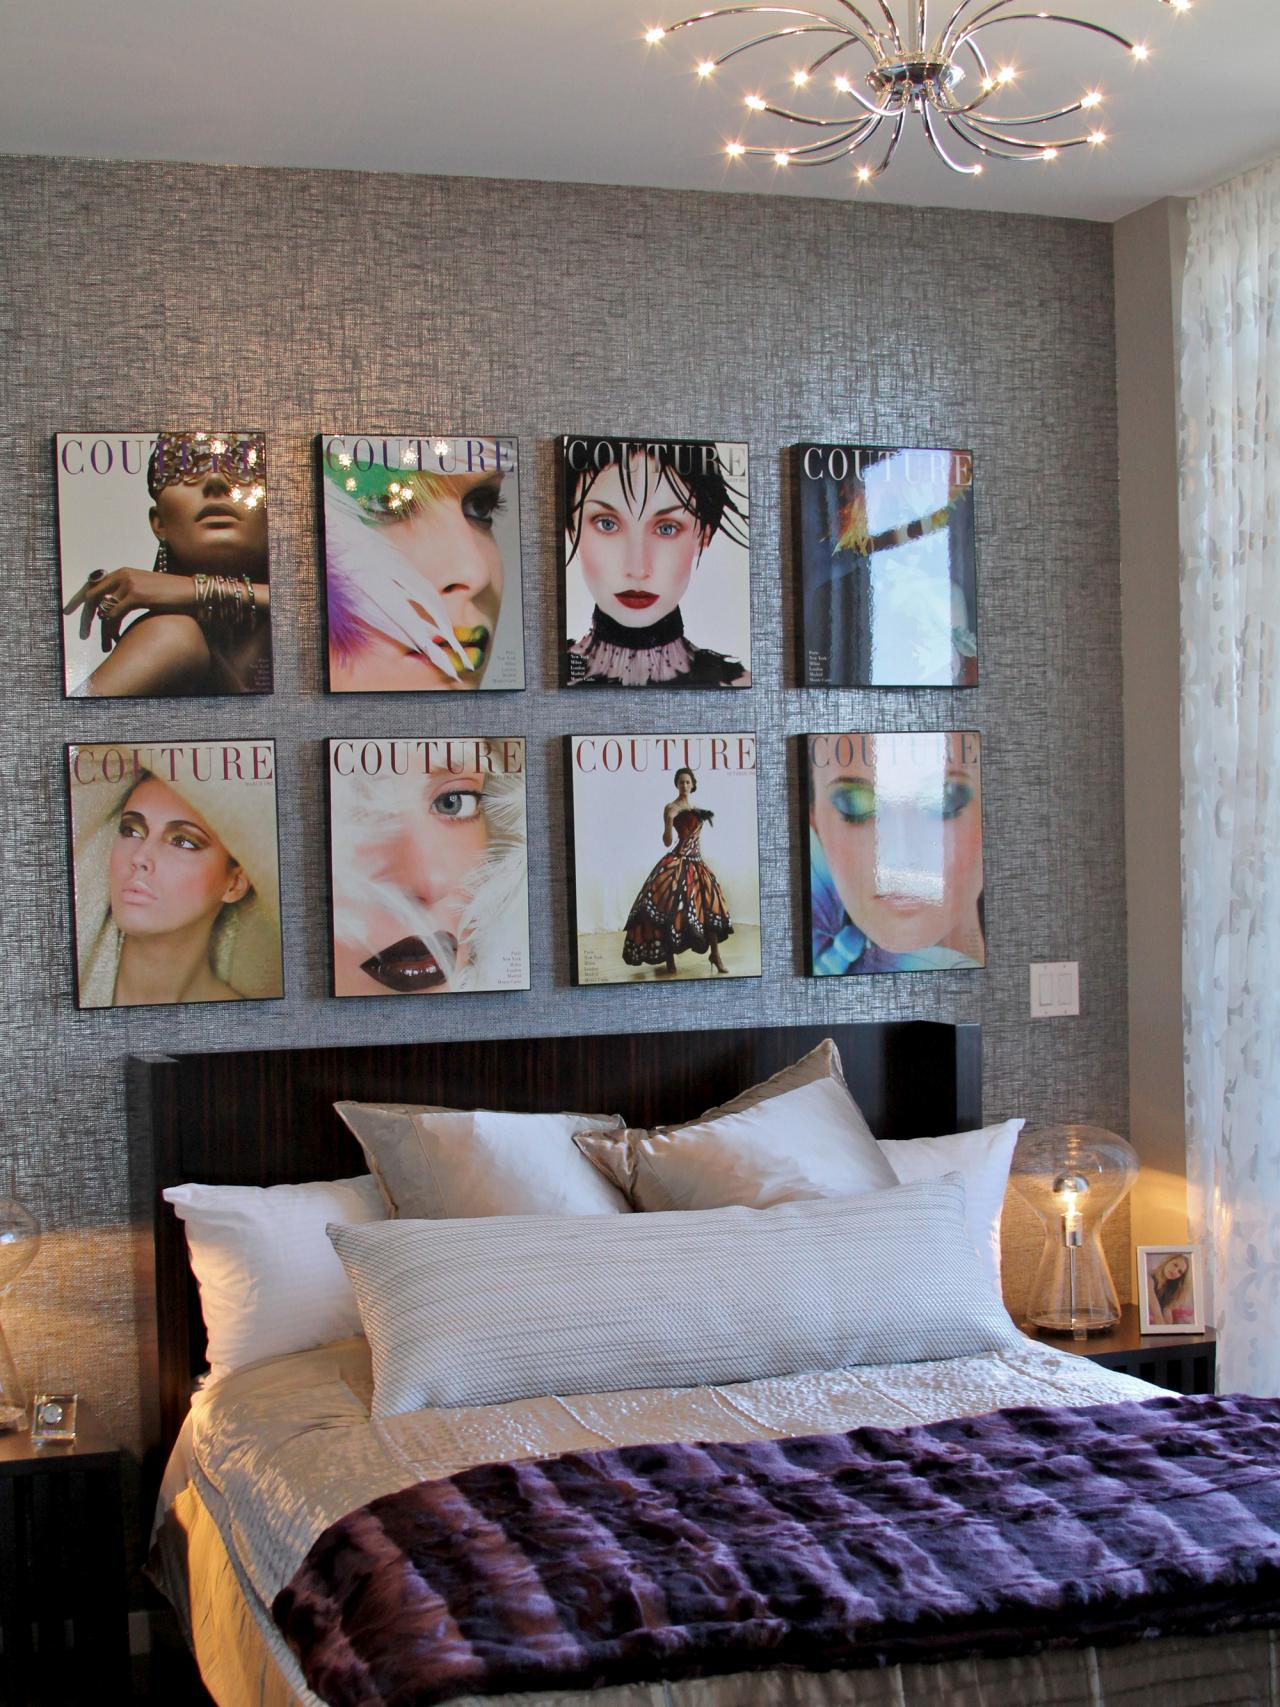 15 Cheap Wall Decor Ideas for Bedroom | Royal Furnish on Bedroom Ideas Cheap  id=78571